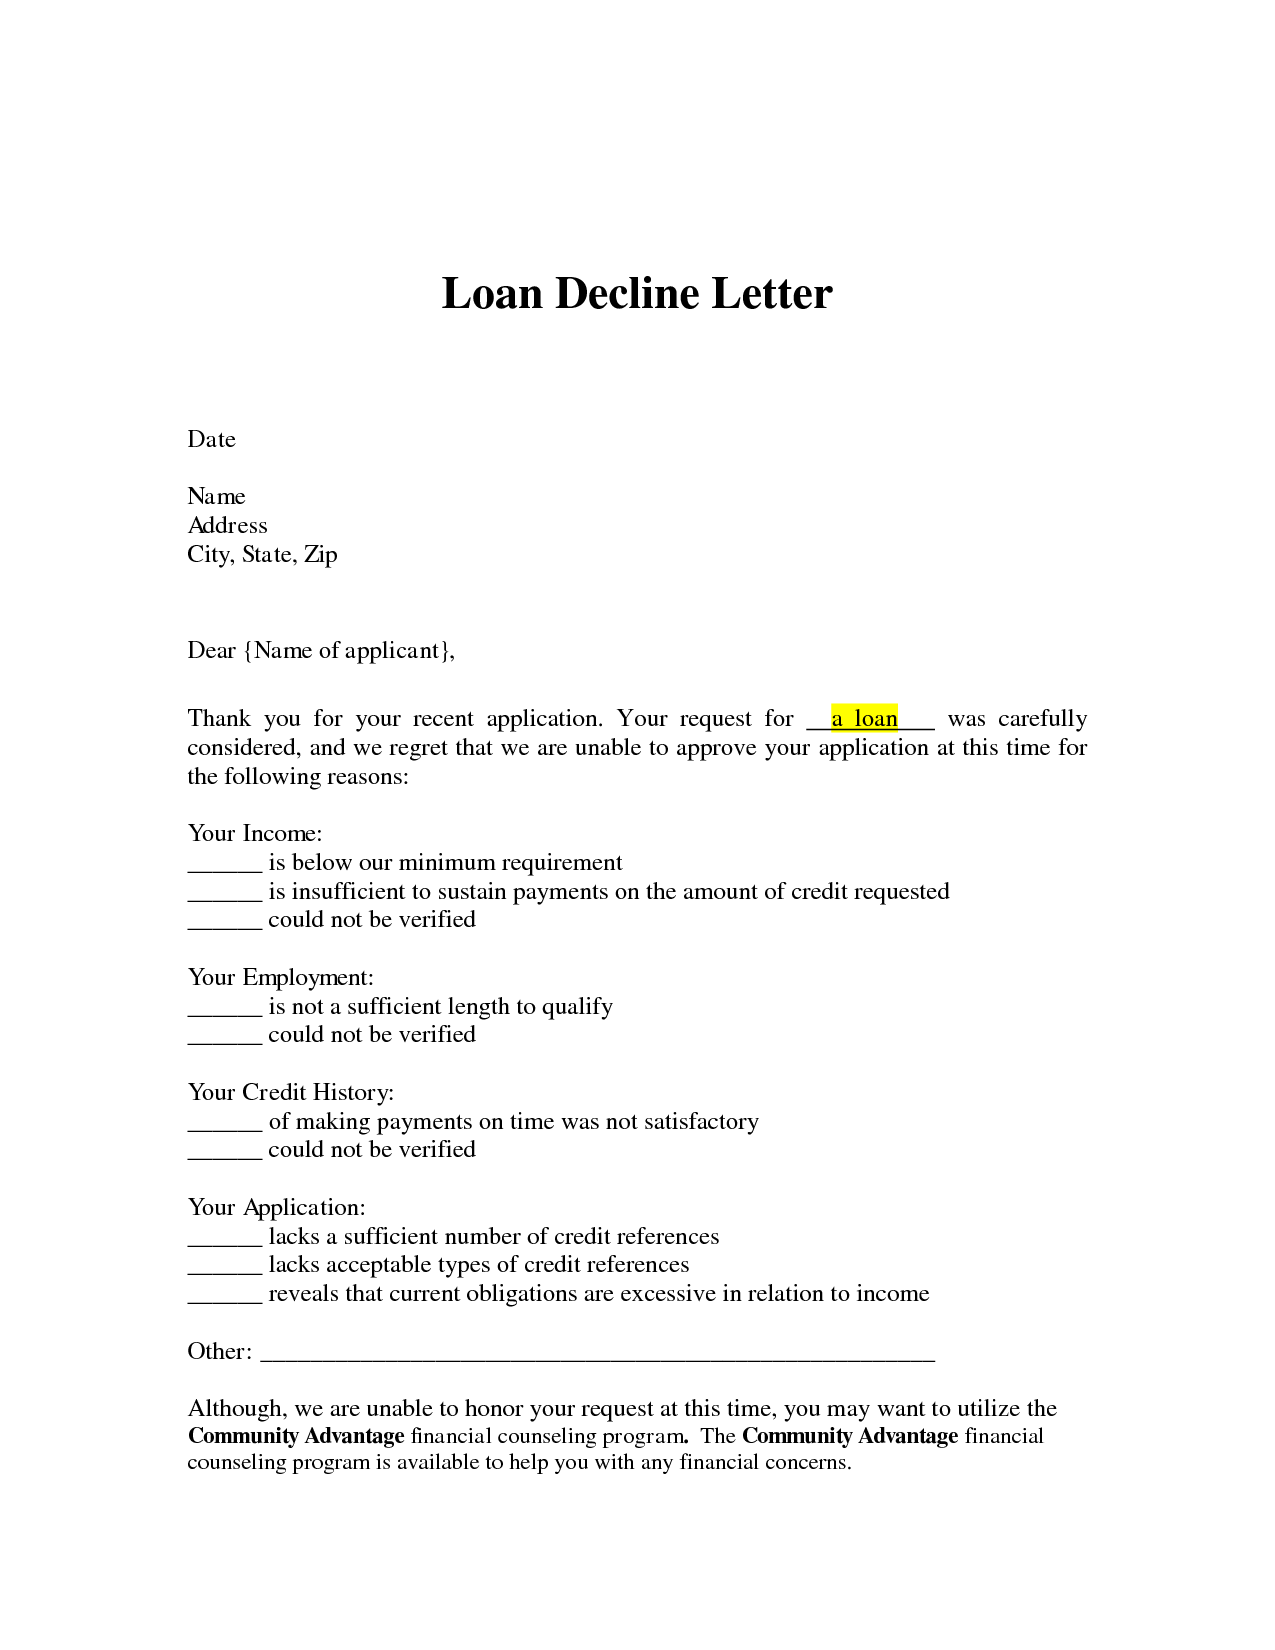 Rejection Letter Response Sample Job Rejection Letter Candidate